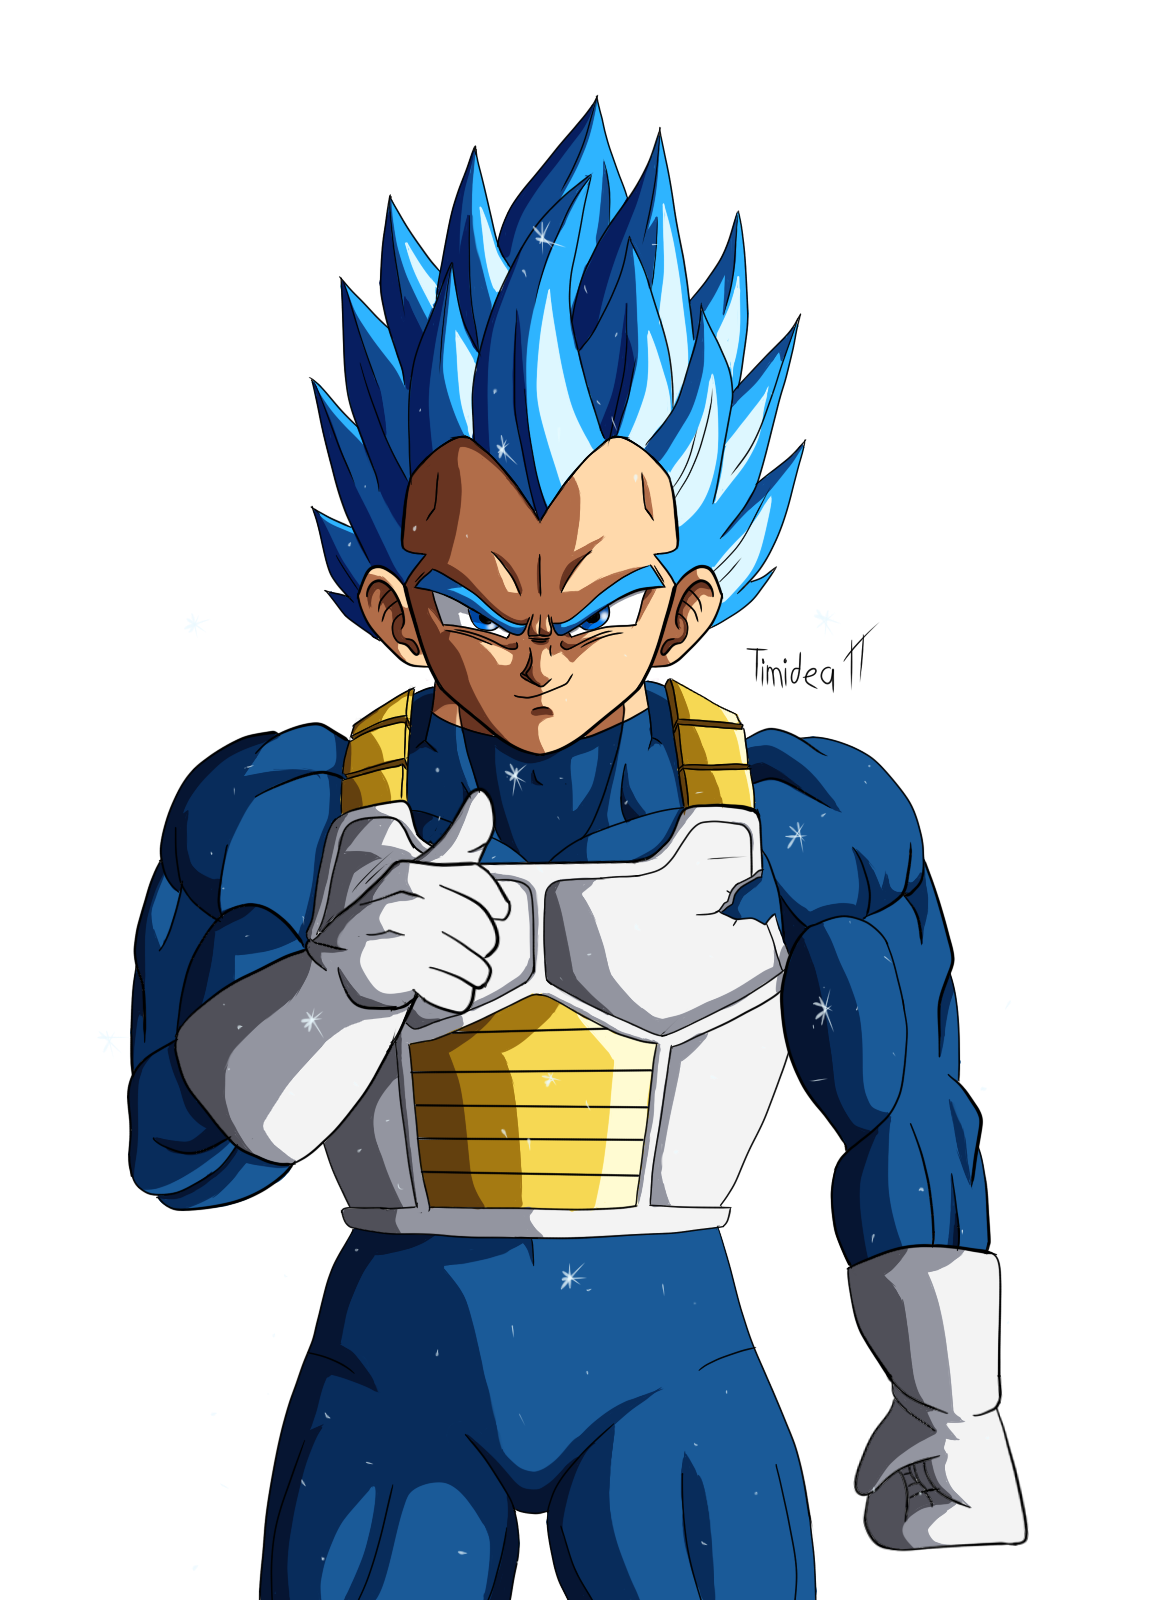 Dragon ball super vegeta png. Fanart oc blue dbz